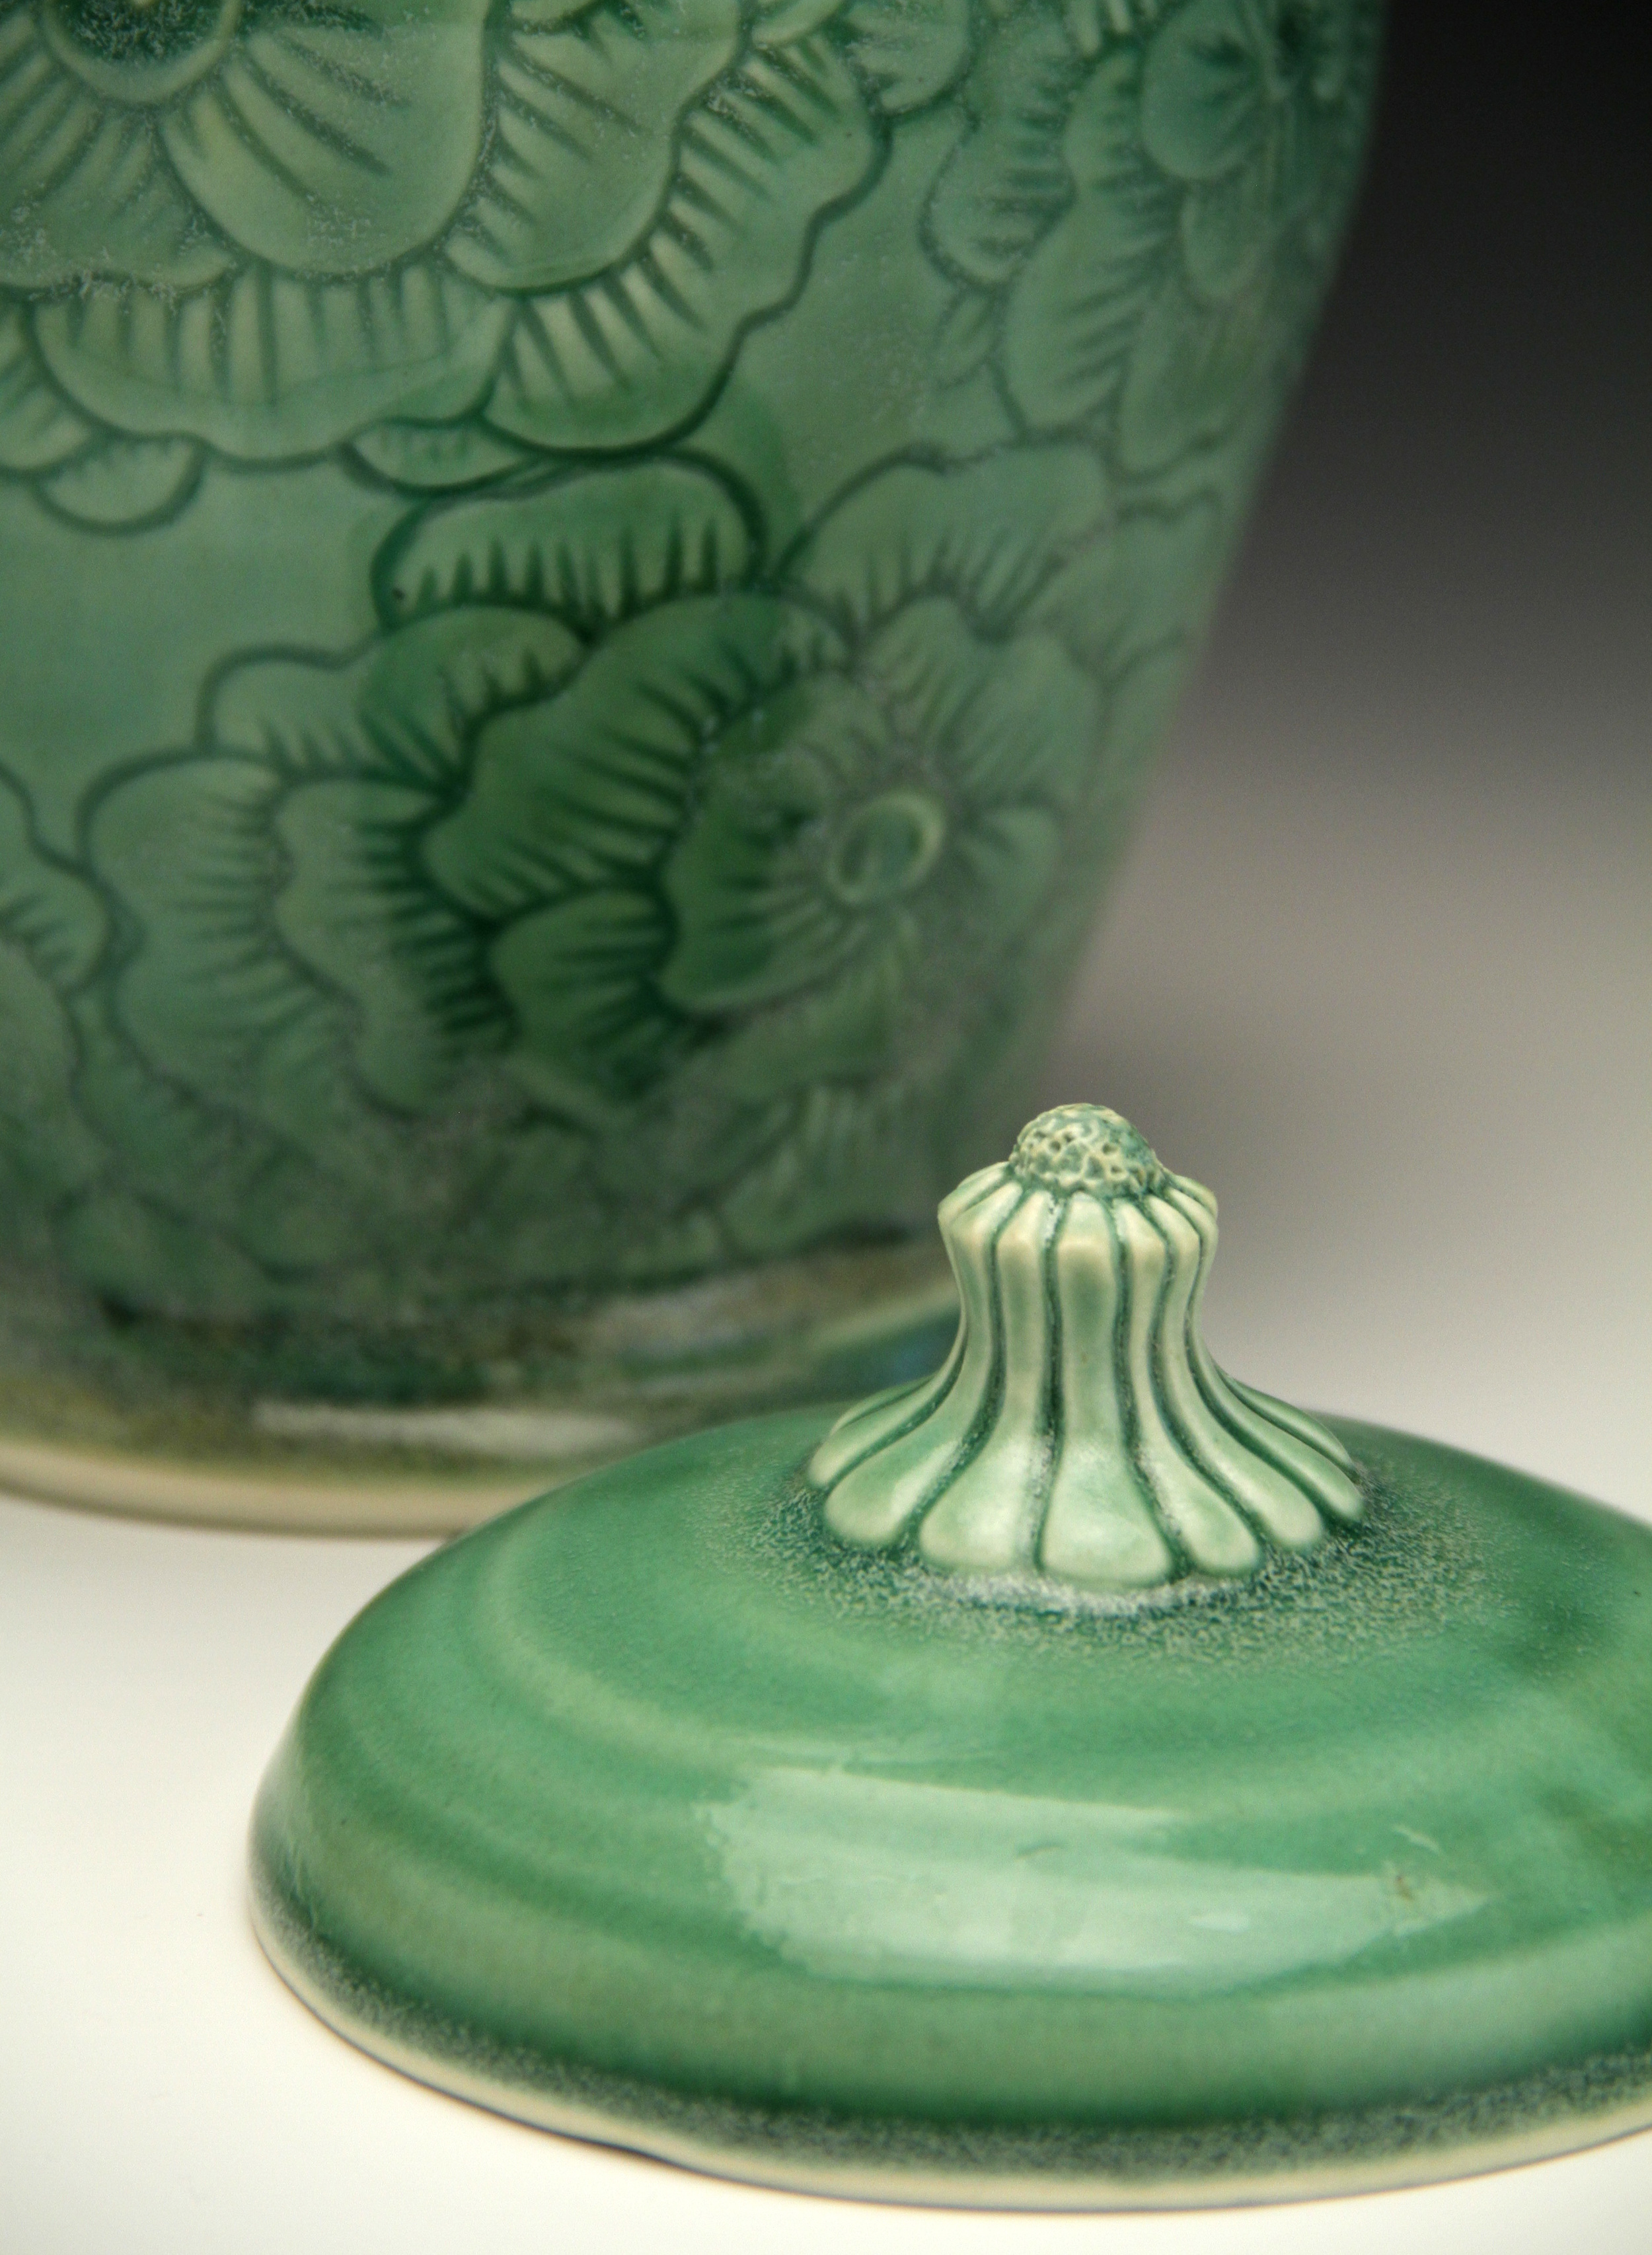 Green Jar Detail.jpg